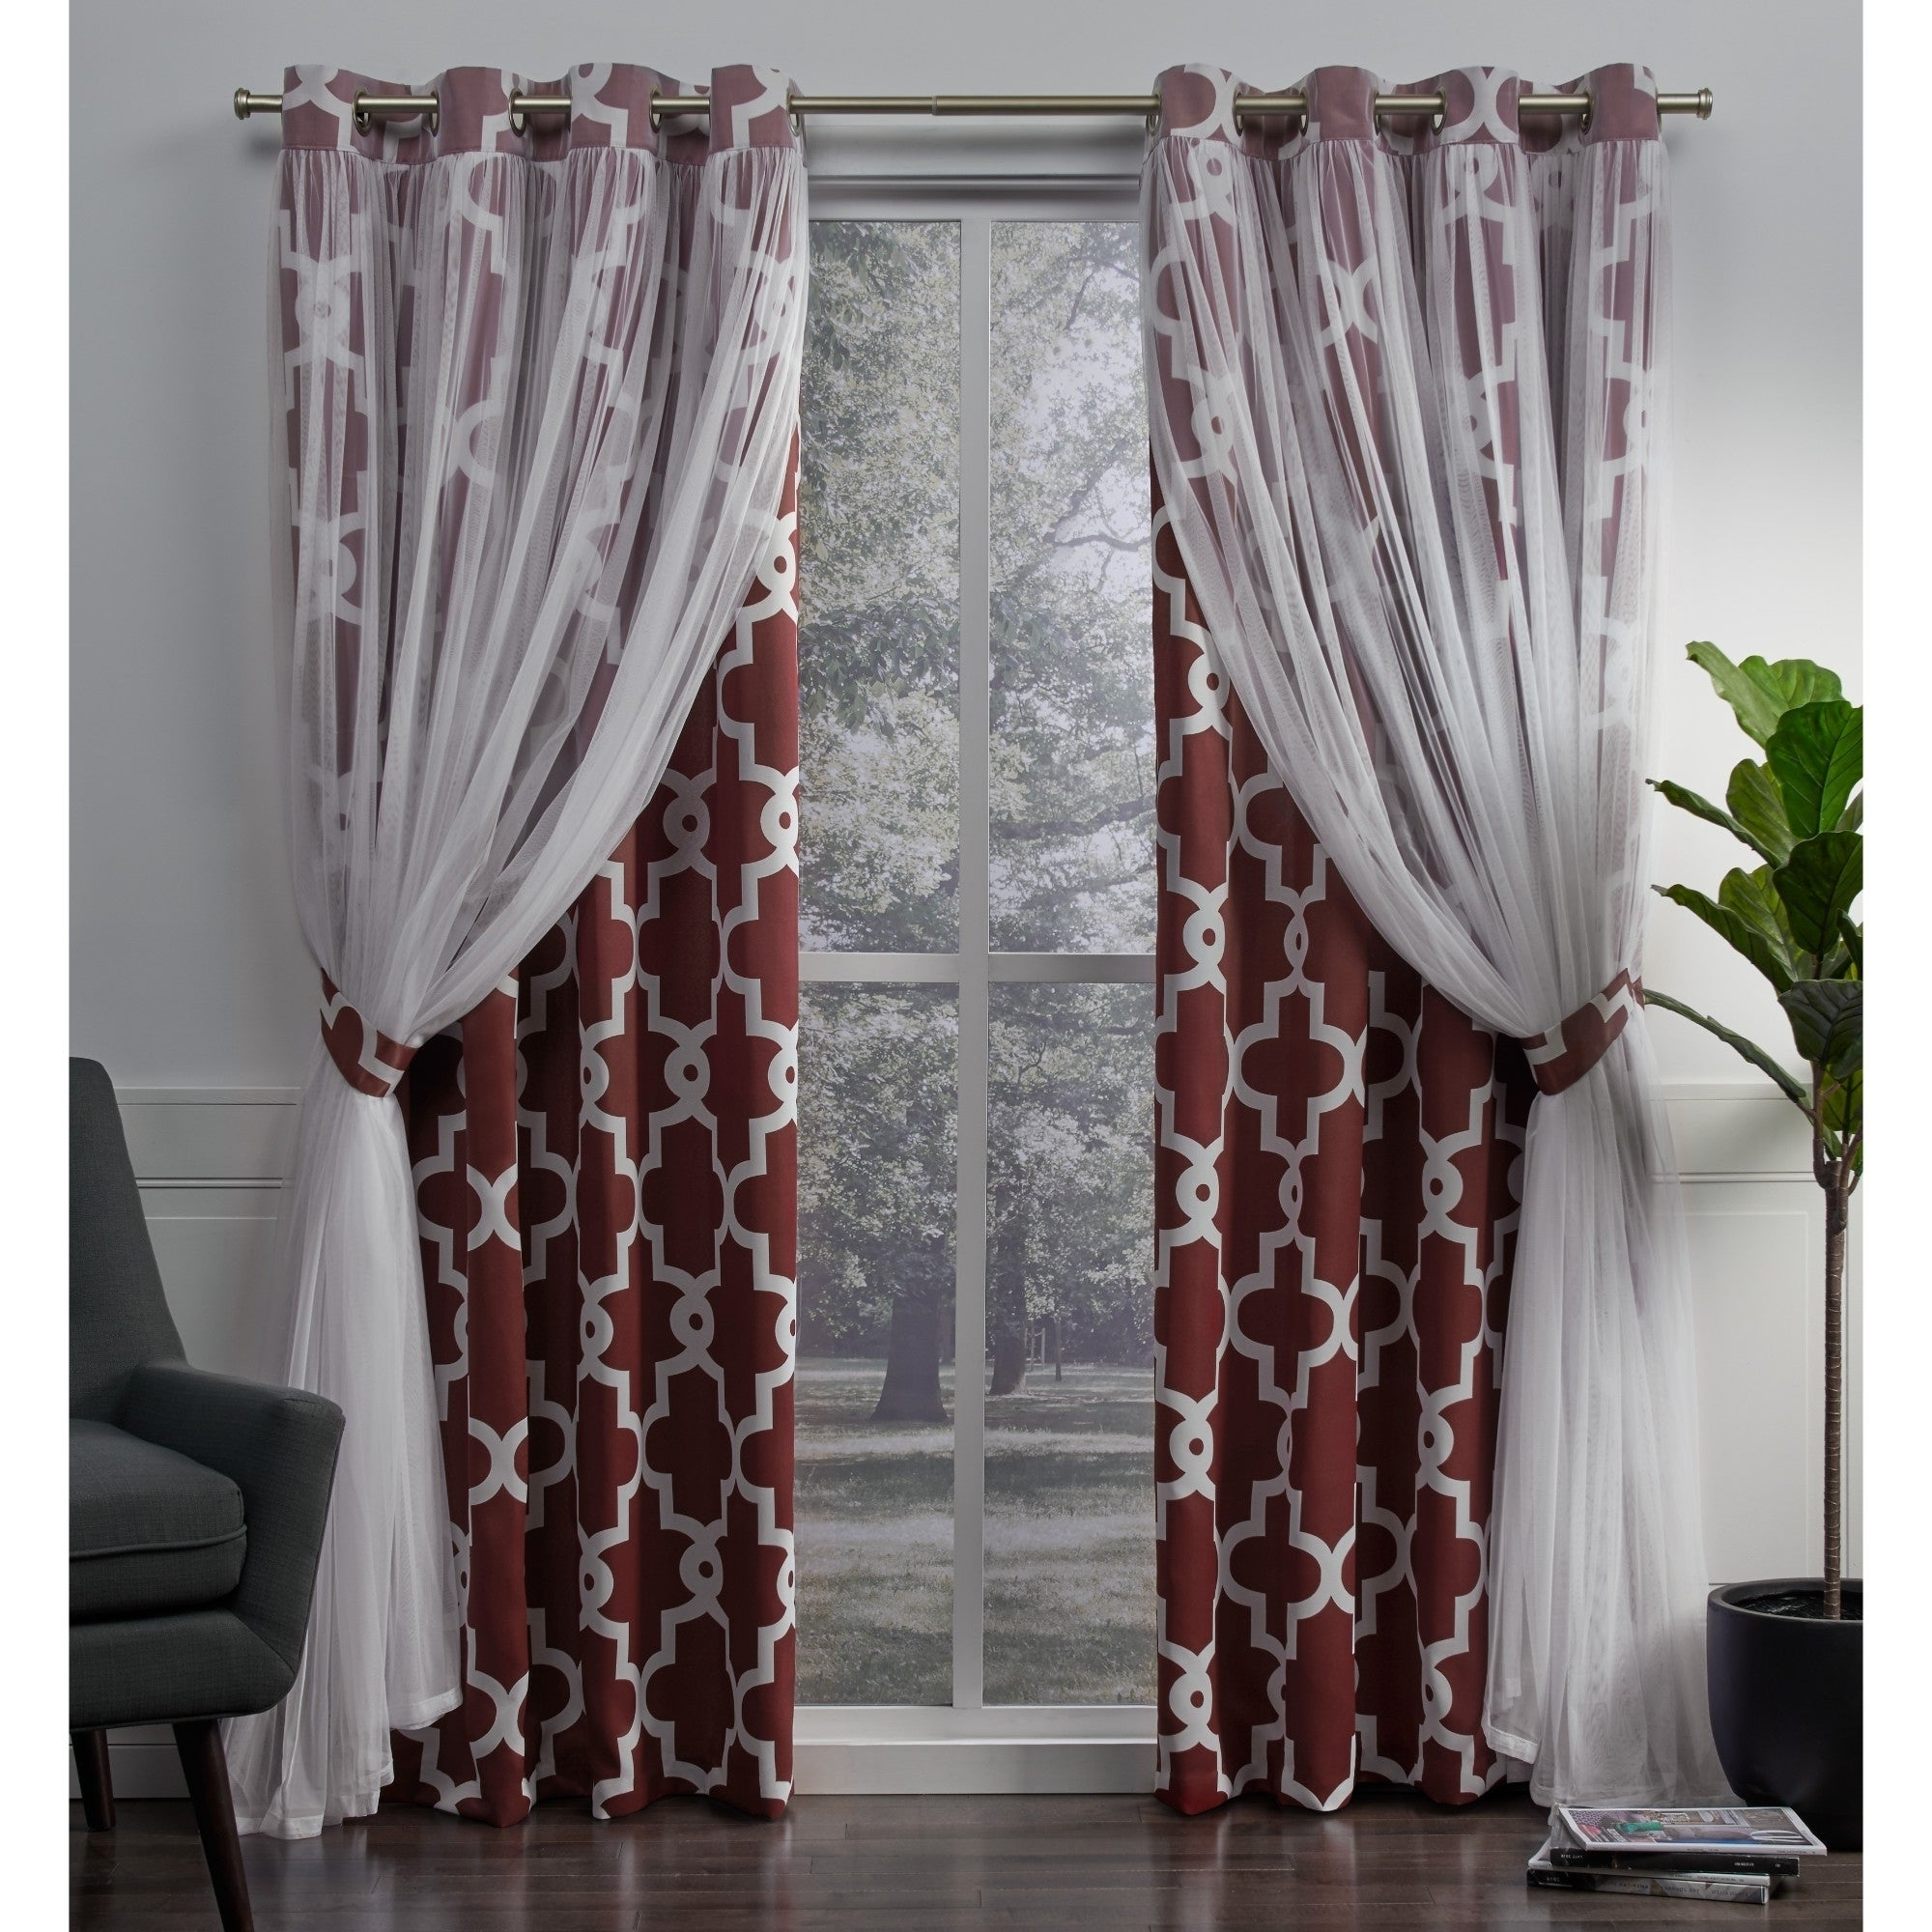 Favorite Details About Ati Home Alegra Thermal Woven Blackout Grommet Top Curtain For Thermal Woven Blackout Grommet Top Curtain Panel Pairs (View 4 of 20)